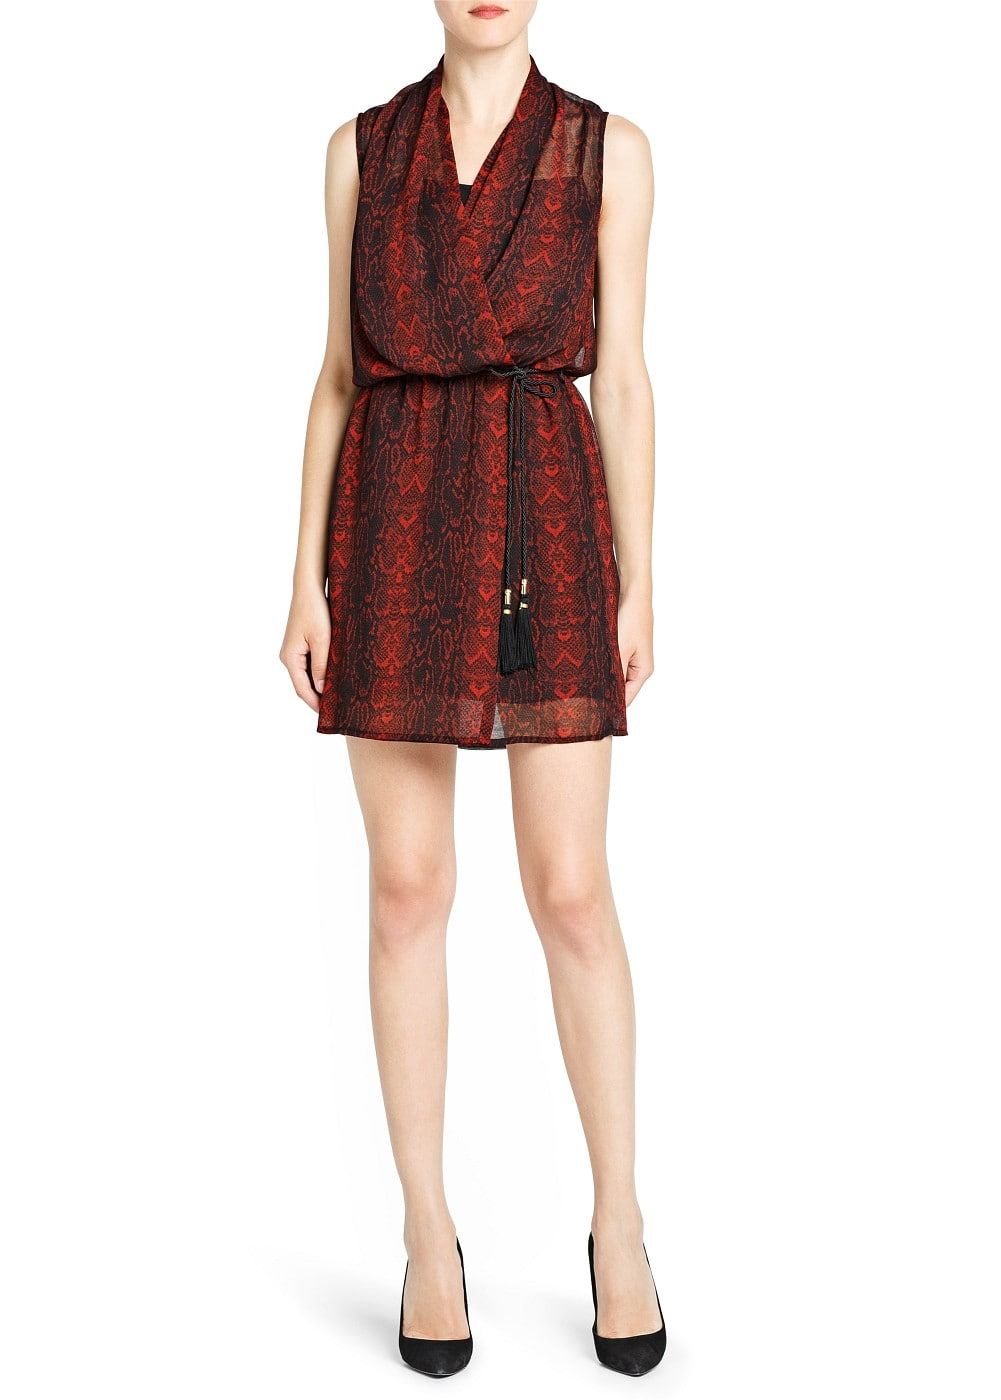 Snake print chiffon dress